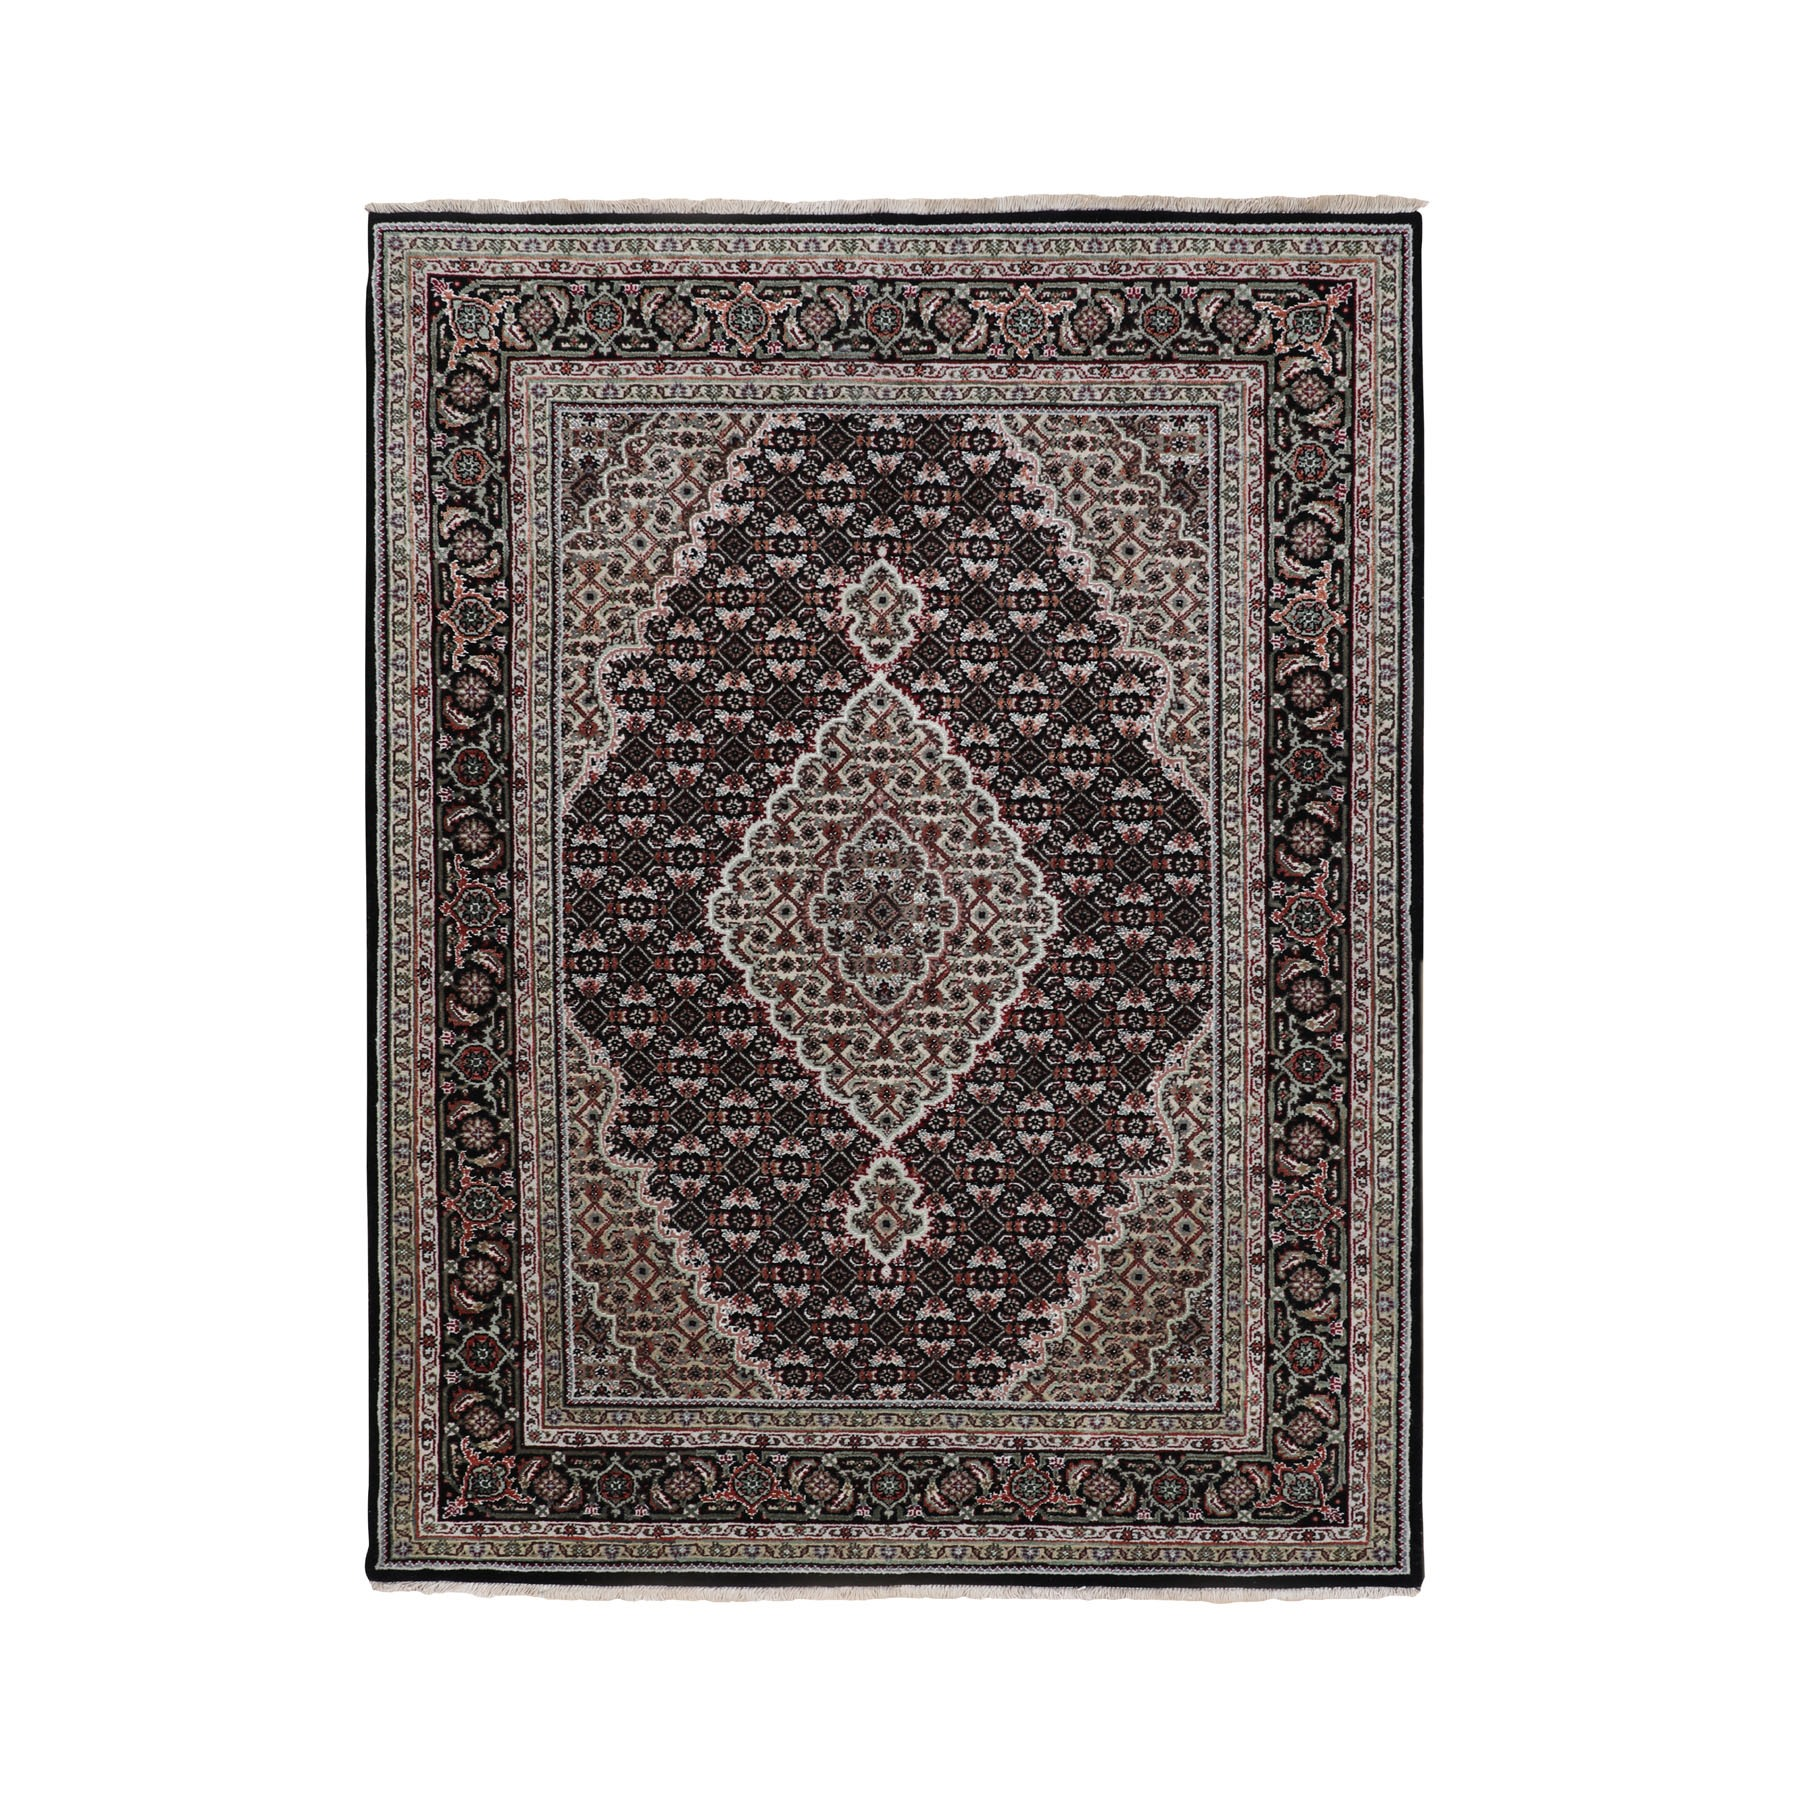 "4'10""x6'10"" Black Tabriz Mahi Fish Design Wool And Silk Hand Woven Oriental Rug"